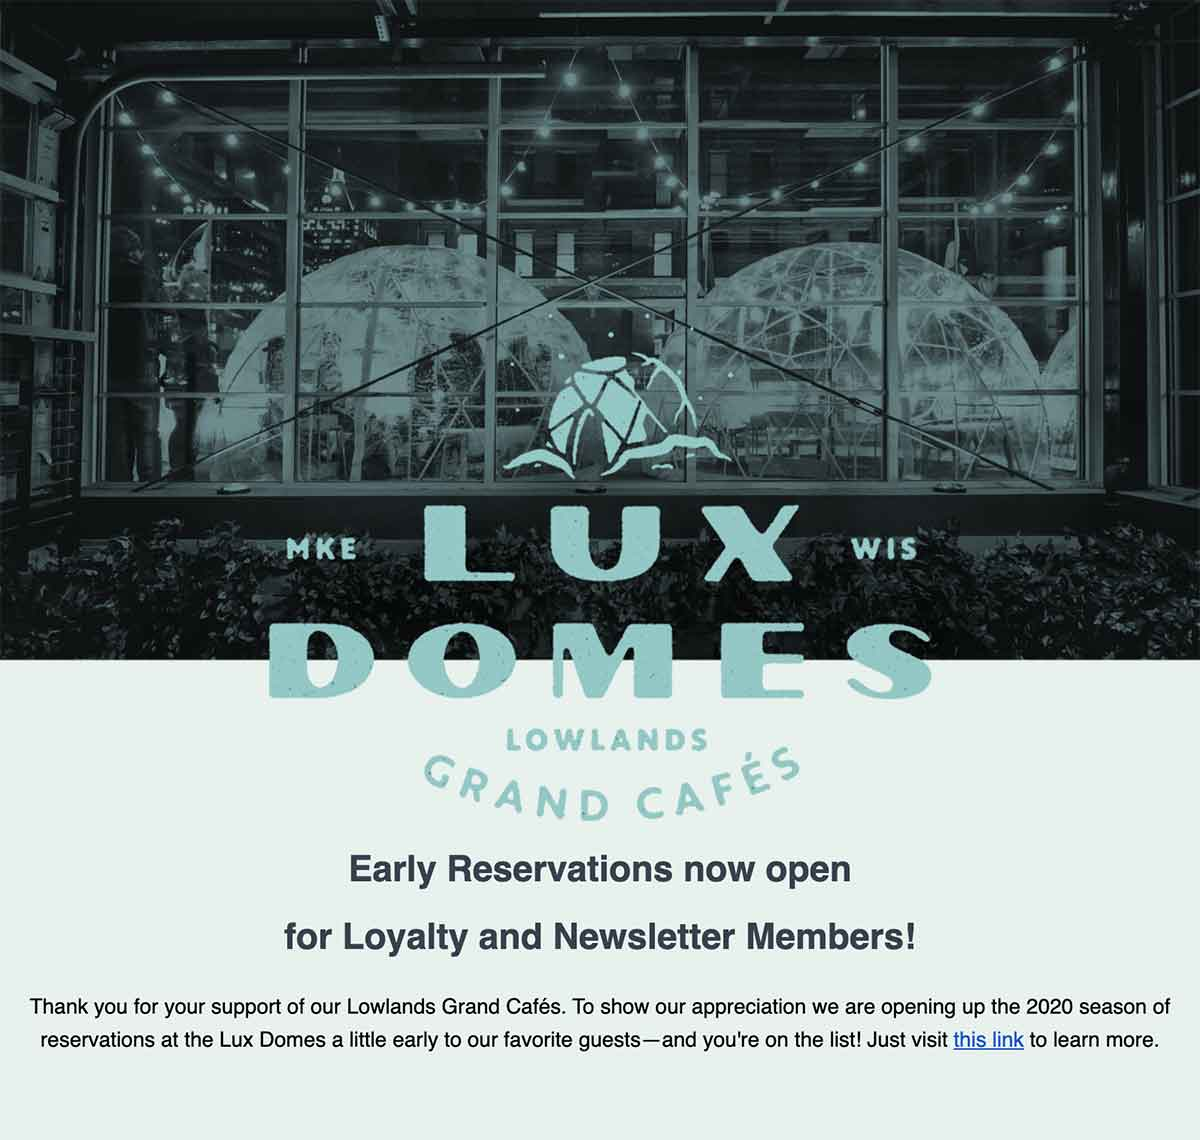 Lowlands Lux Domes Email